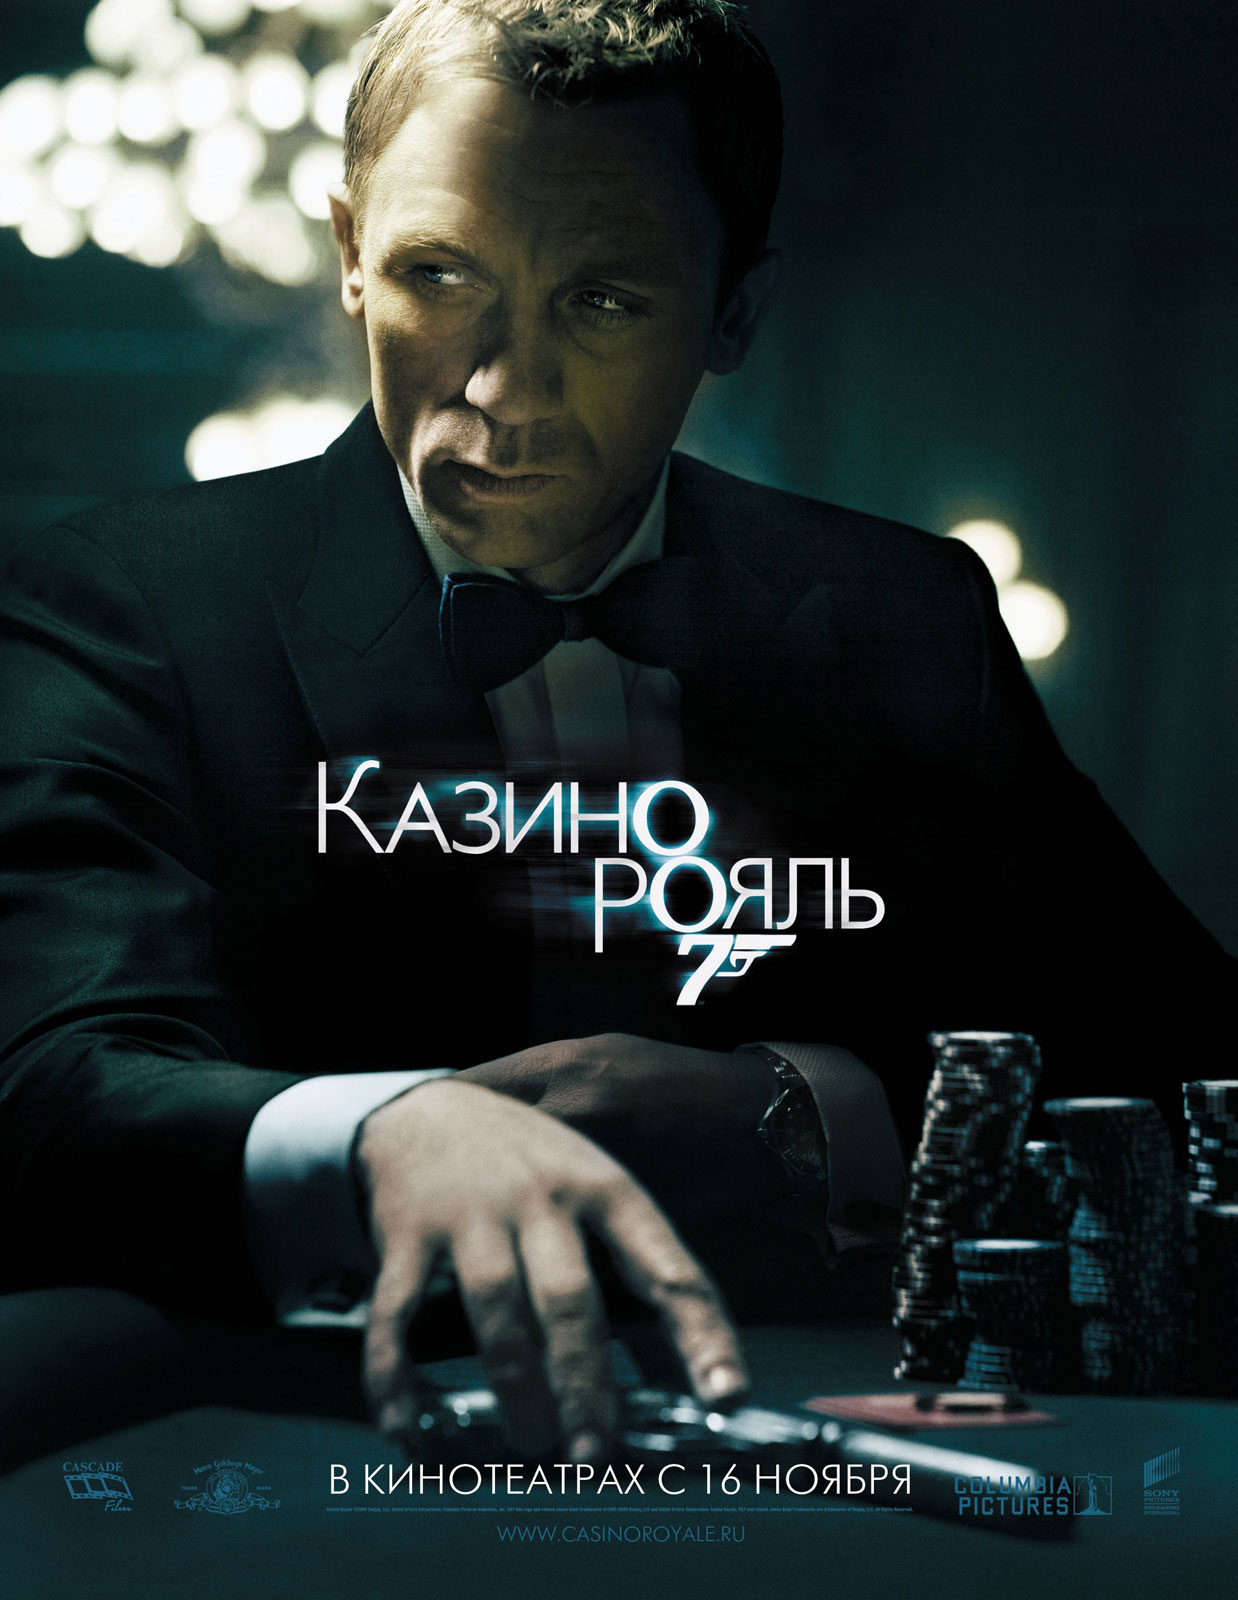 casino royale movie online free gamer handy